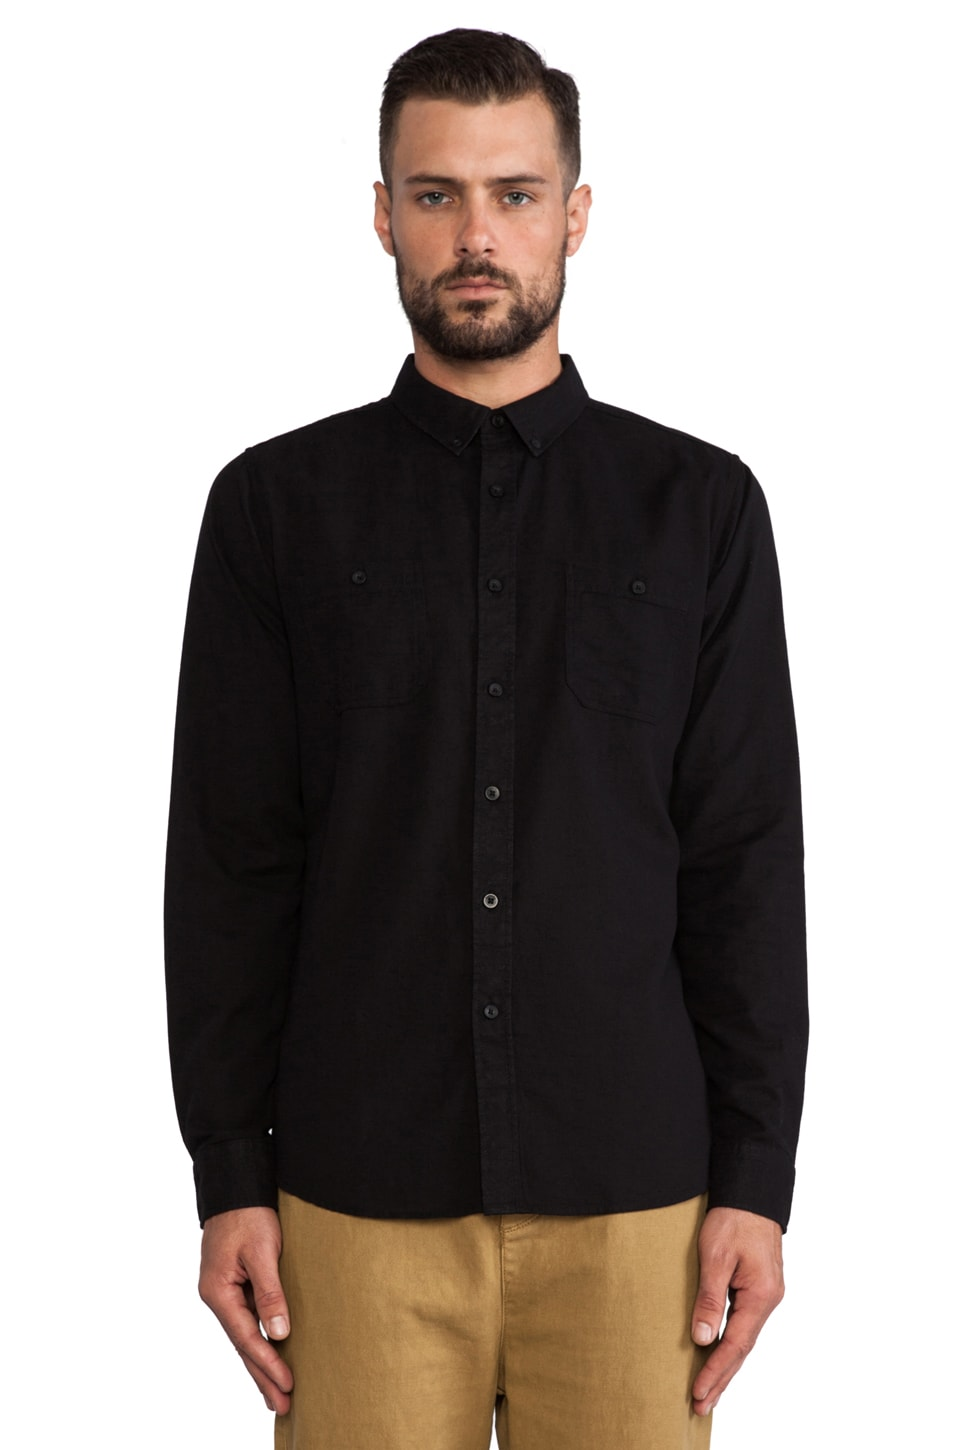 Ezekiel Karved Shirt in Black